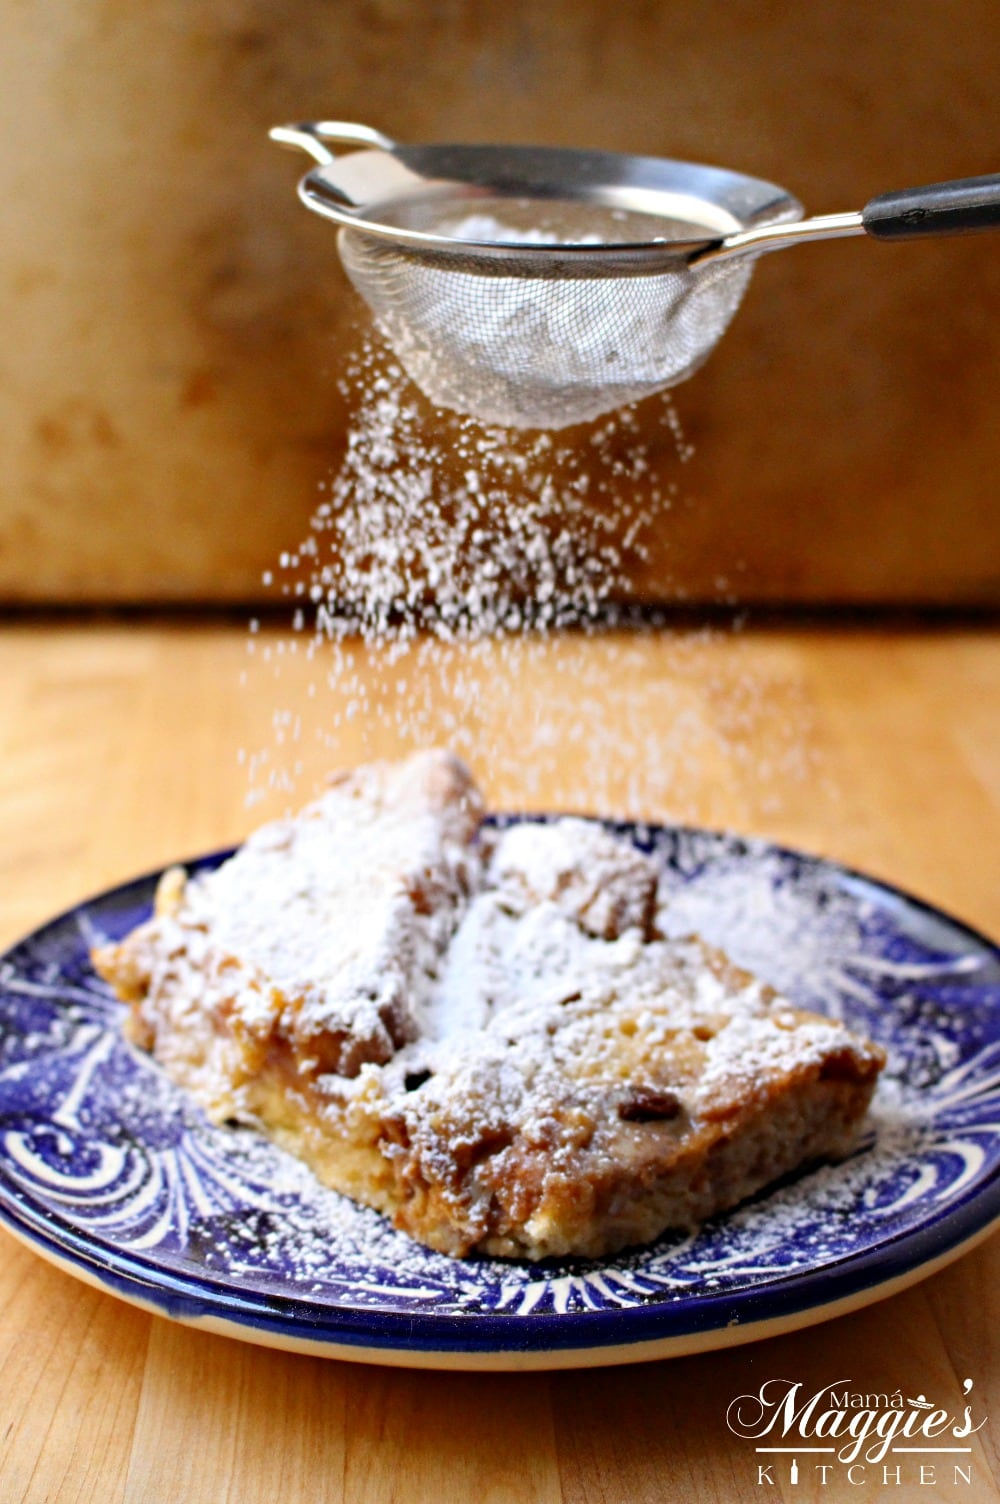 Powdered sugar sprinkling over the Conchas Bread Pudding Capirotada de Conchas. By Mama Maggie's Kitchen